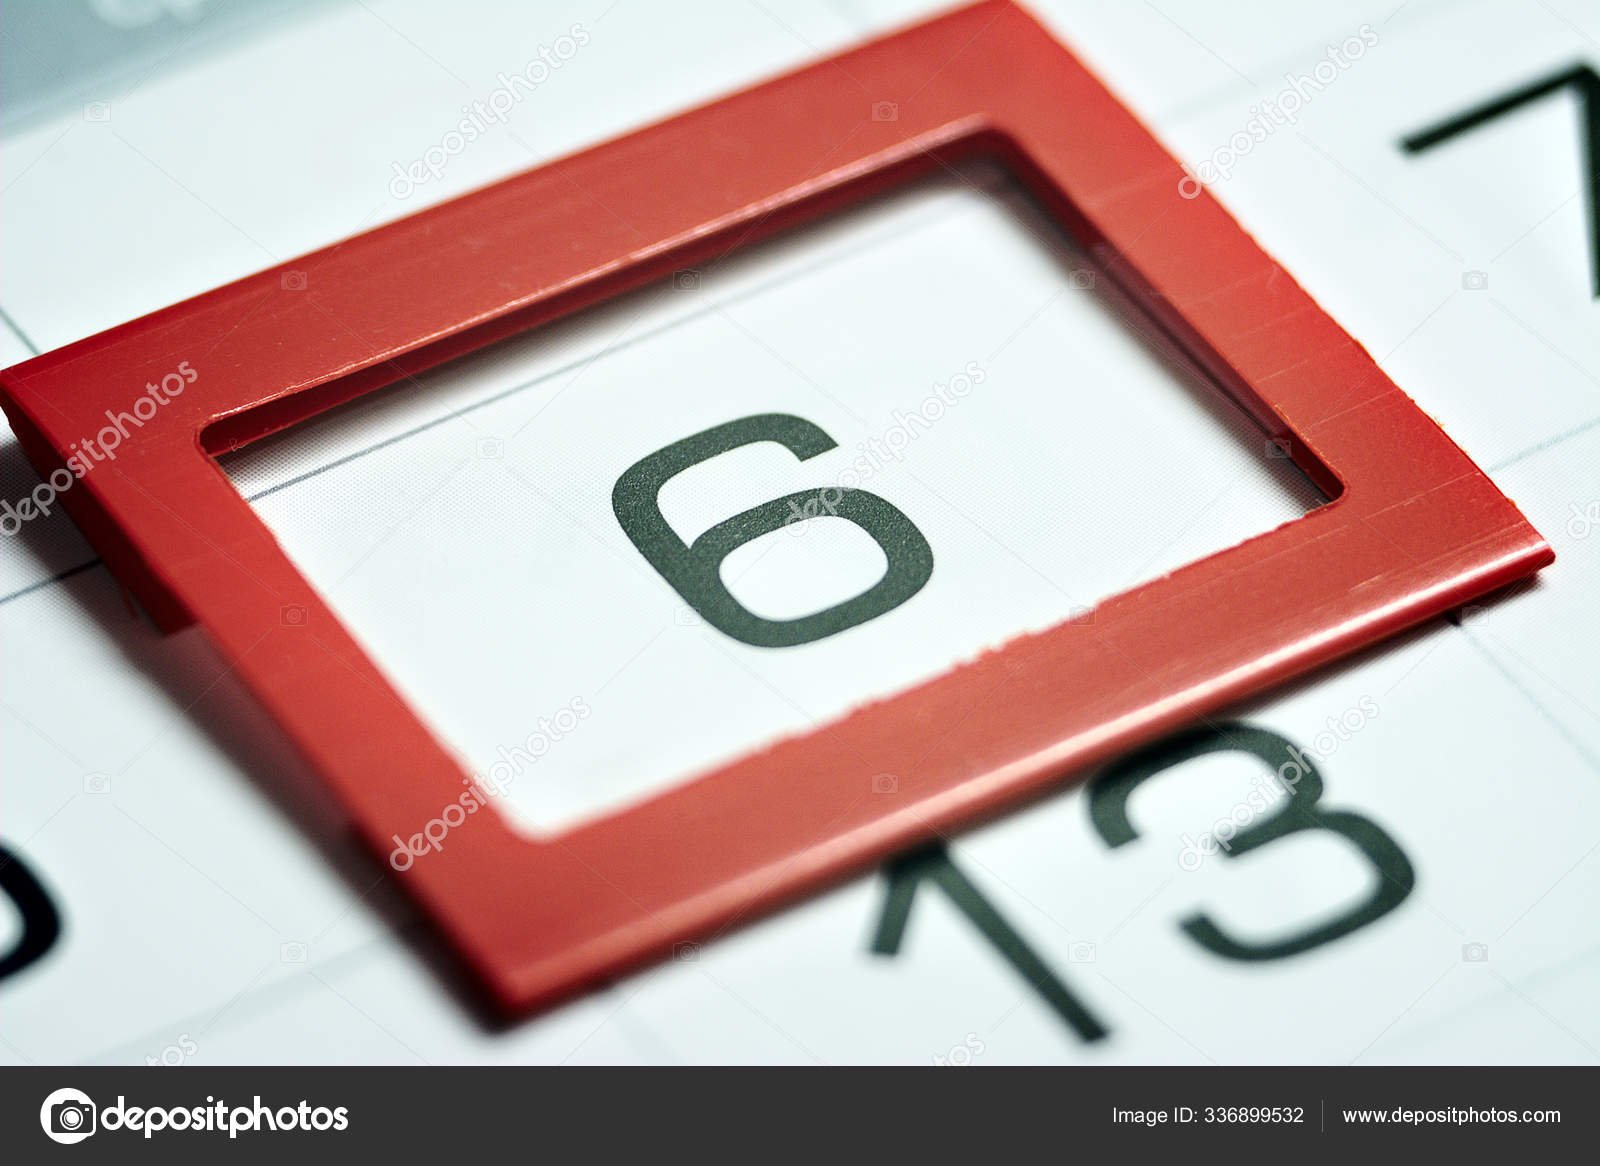 Sixth Day Month Highlighted Calendar Red Frame Close Macro Image Of A Calendar With 2Nd Of Month Highlighted